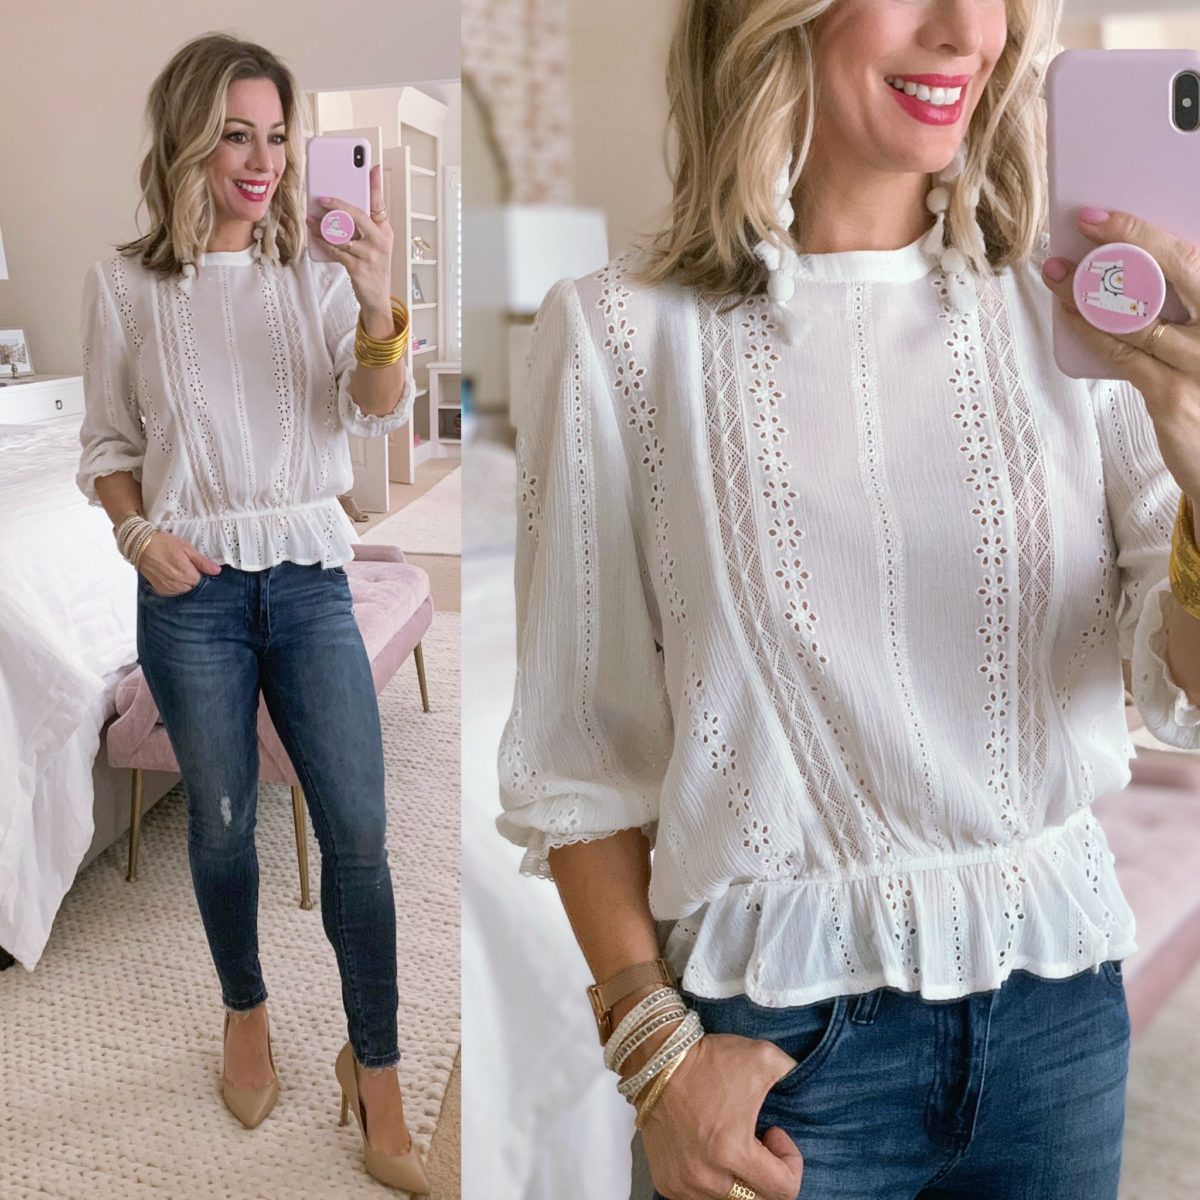 Lace Peplu Top, Kut from Kloth Jeans, Heels